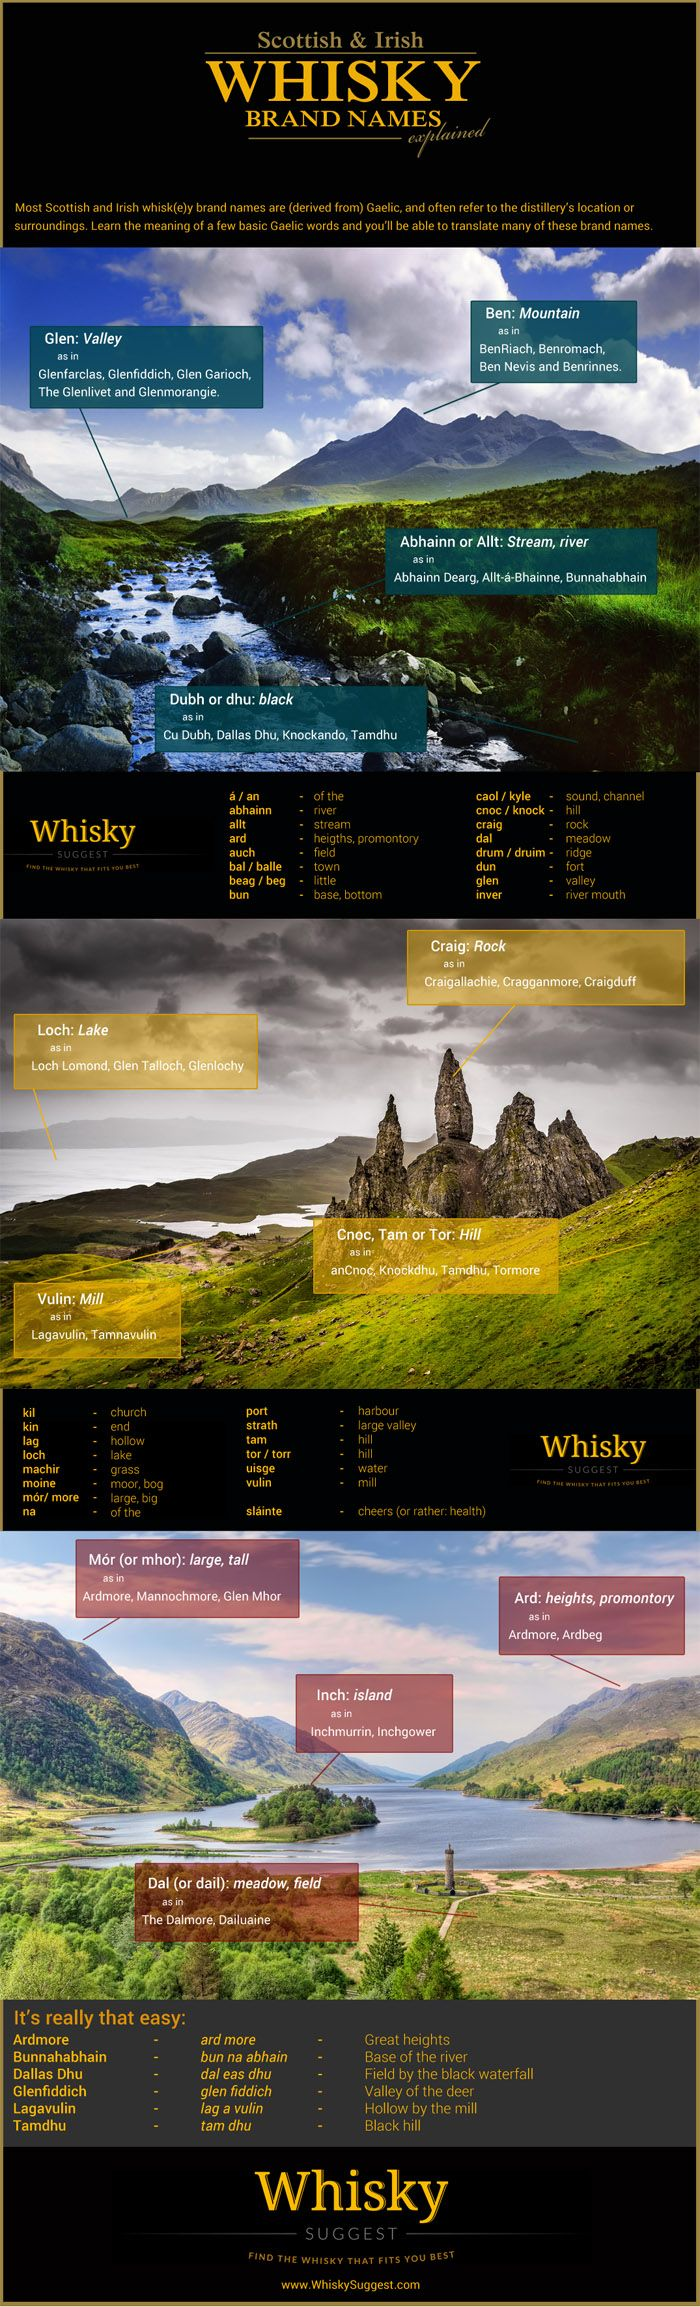 Whisky Brand Names Explained